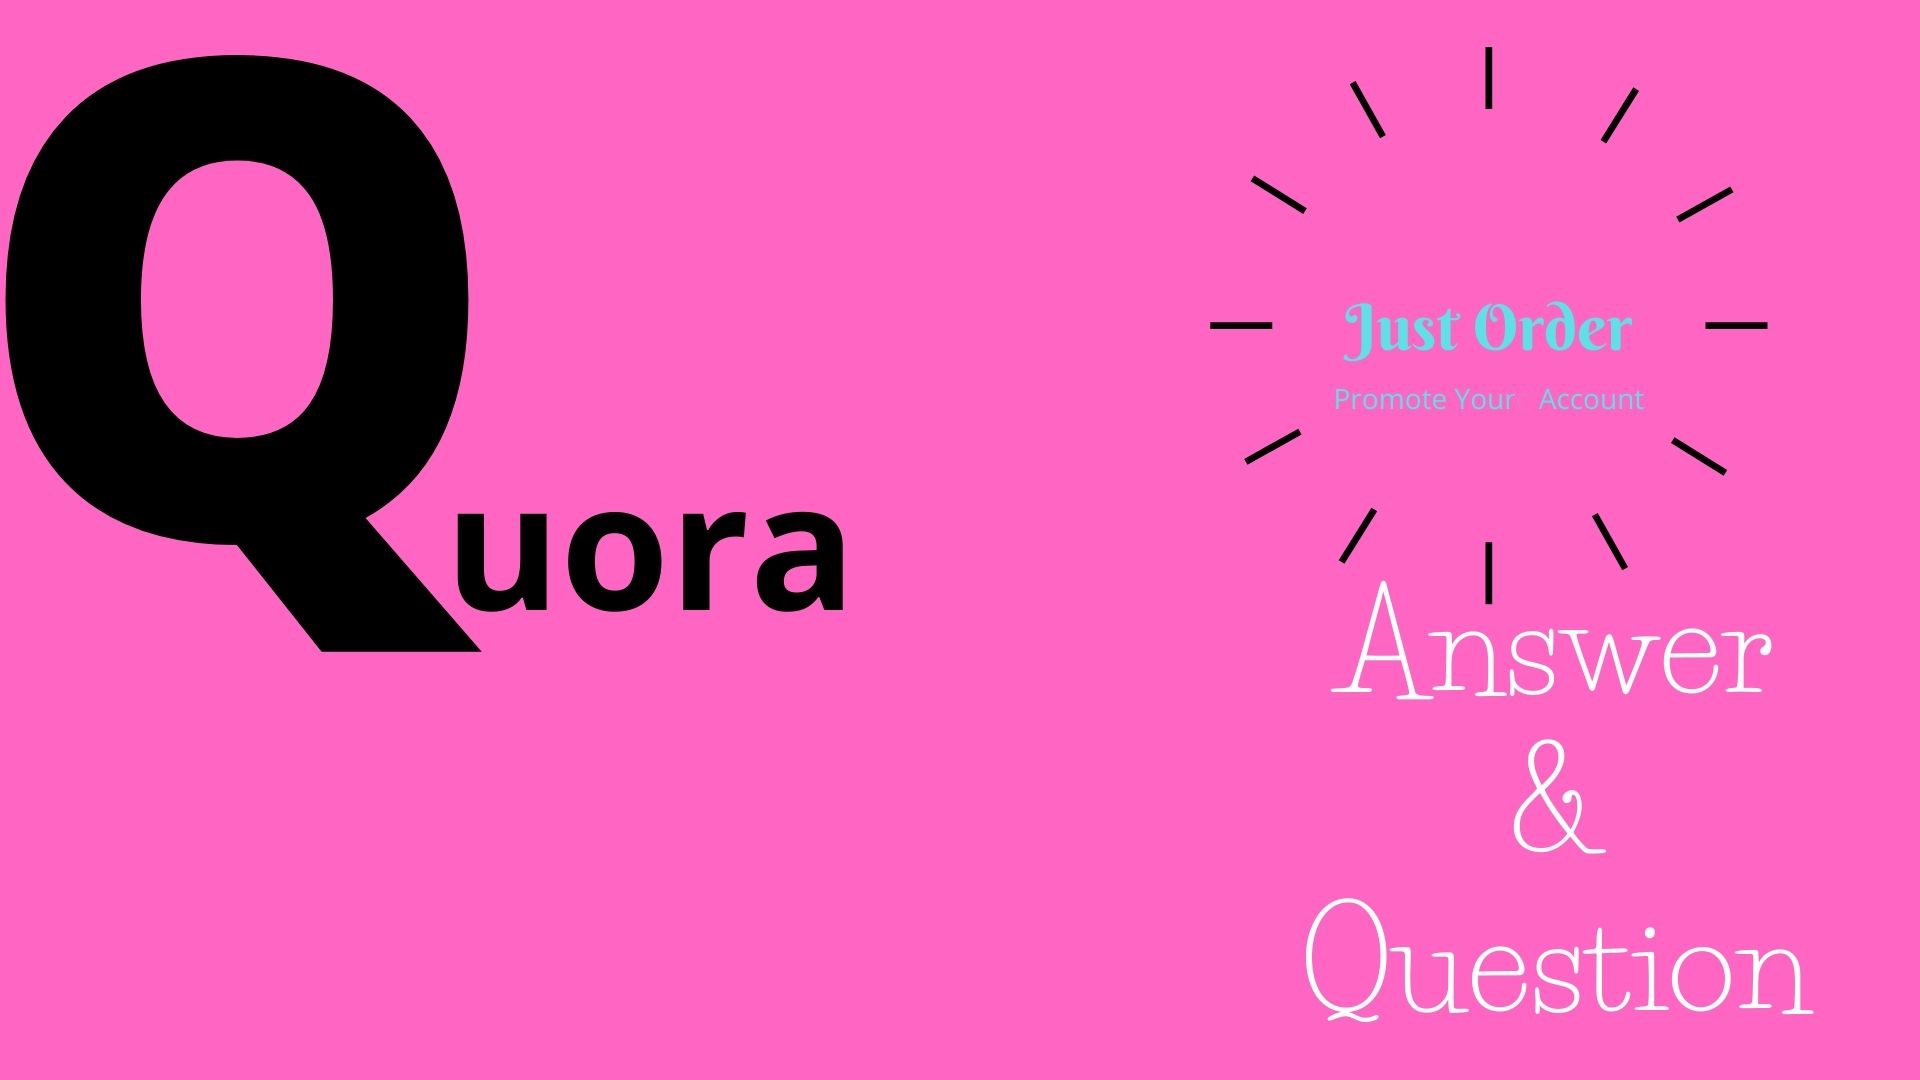 Your Website link Promote High Quality Question & Answer Posting with Quora